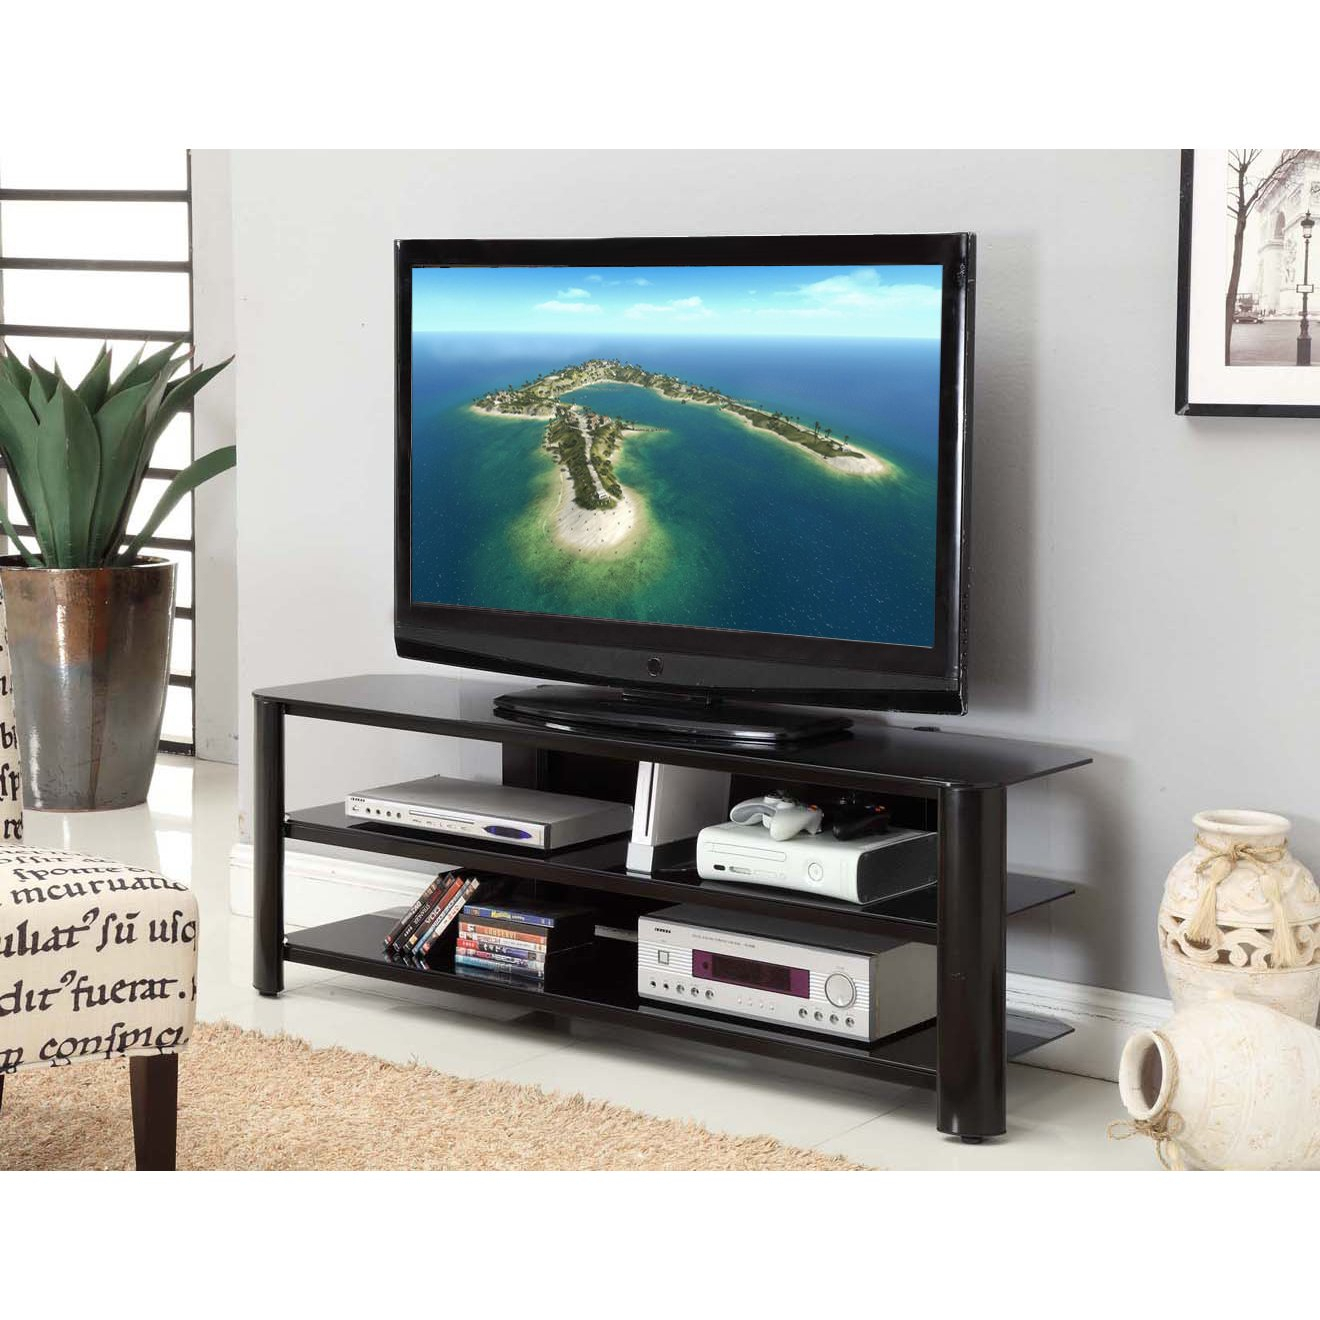 Shop Fold 'n' Snap Oxford Ez Black Innovex Tv Stand - Free Shipping regarding Oxford 84 Inch Tv Stands (Image 25 of 30)